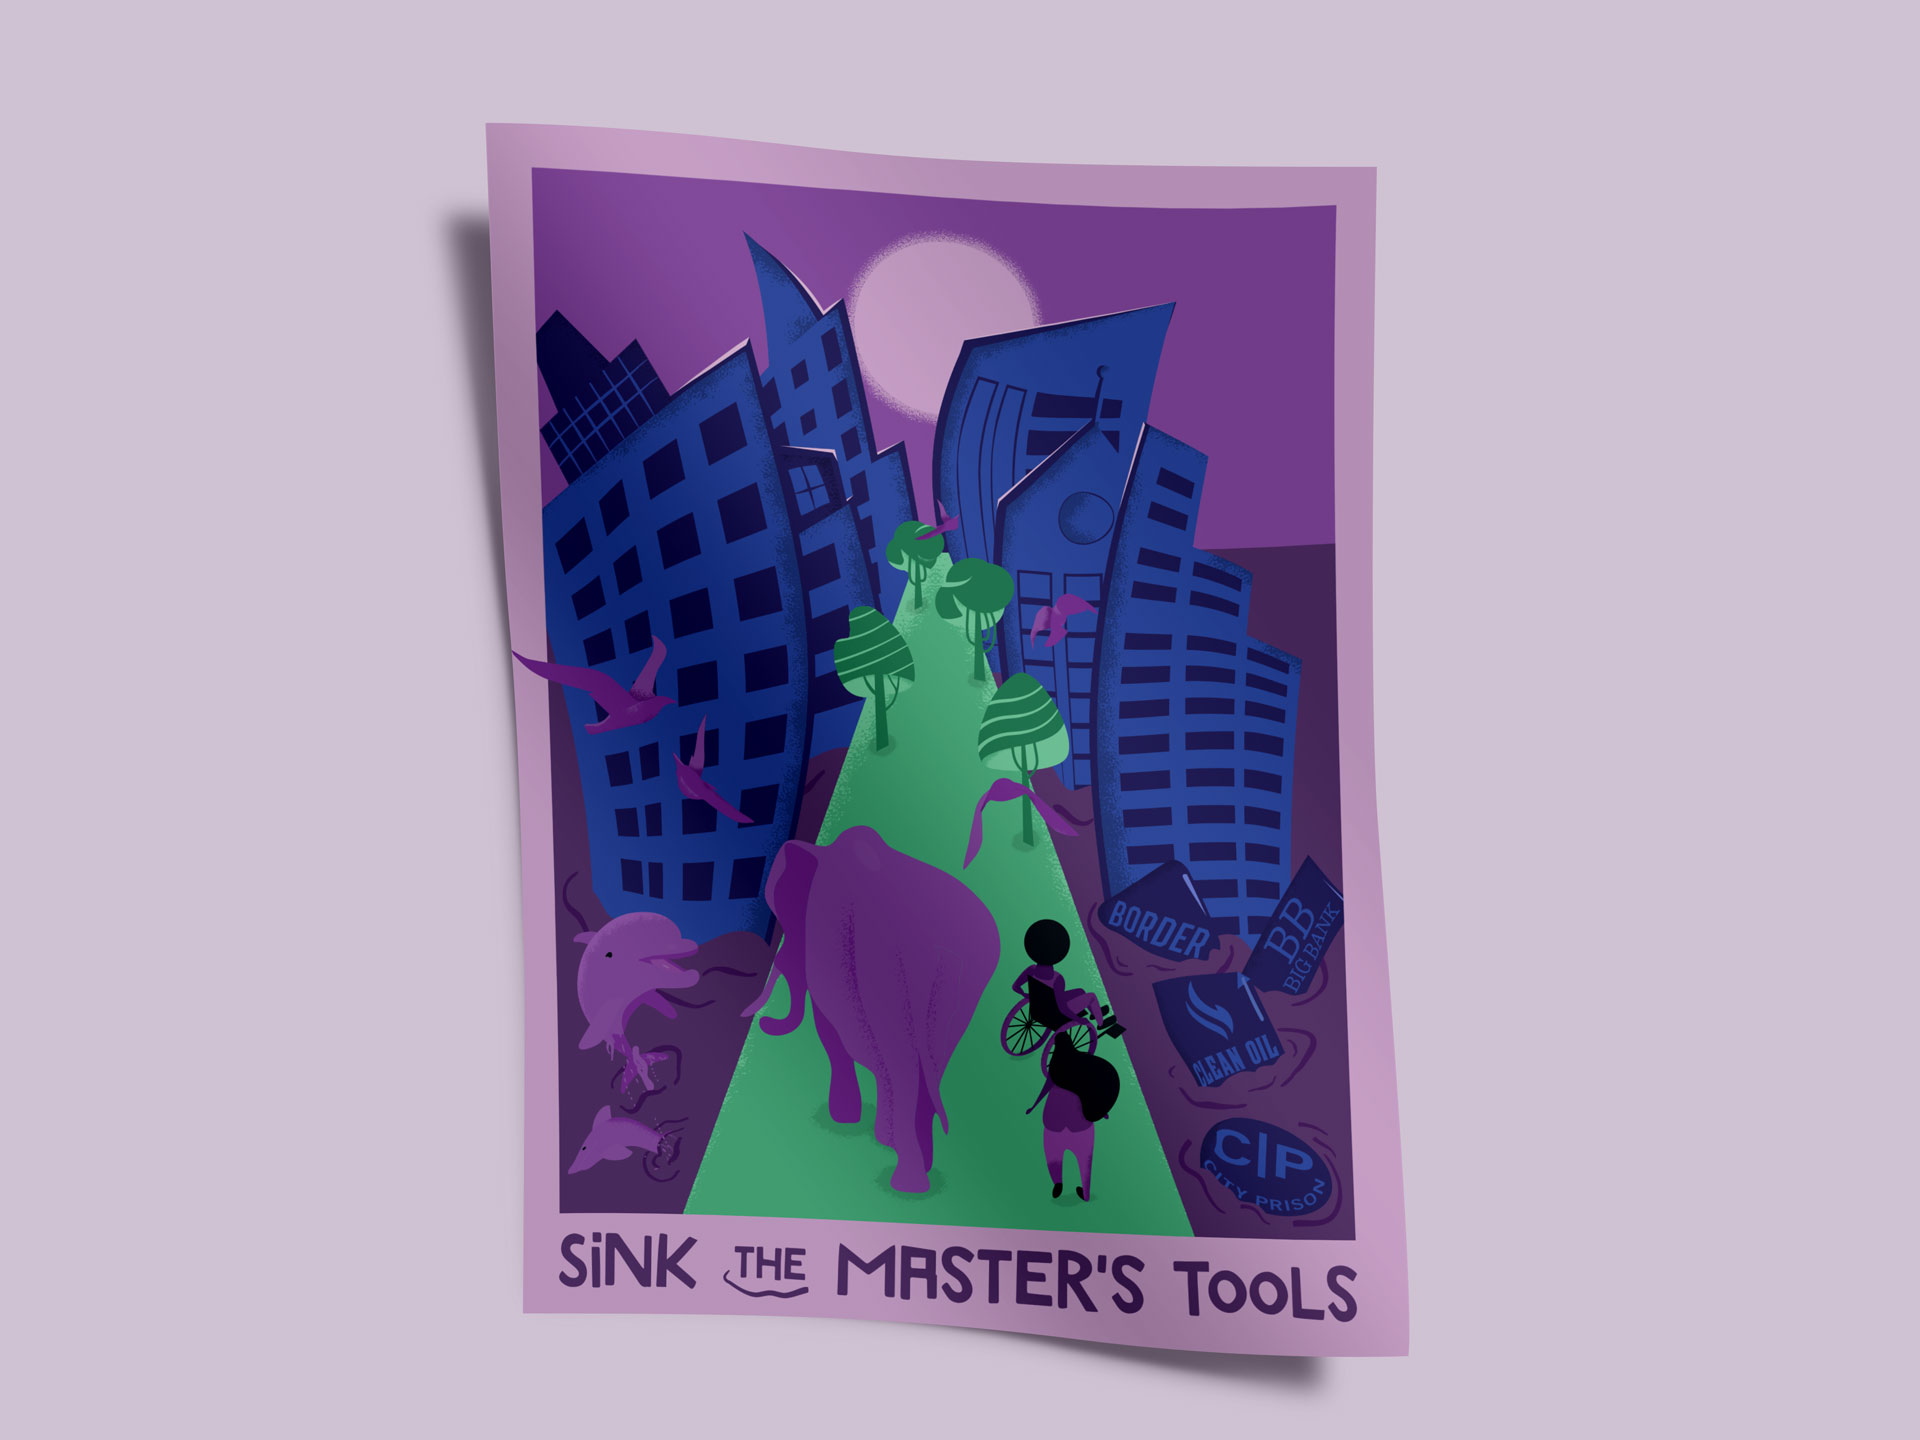 Mockup poster of Sink the master's tools illustration. Illustration depicts distorted blue buildings sinking and a center green street in which an elephant and two humans, one on a wheelchair, are on. The moon is bright and full. On the left side dolphins are jumping. On the right side big logos of a prison, border, bank and oil company are sinking.